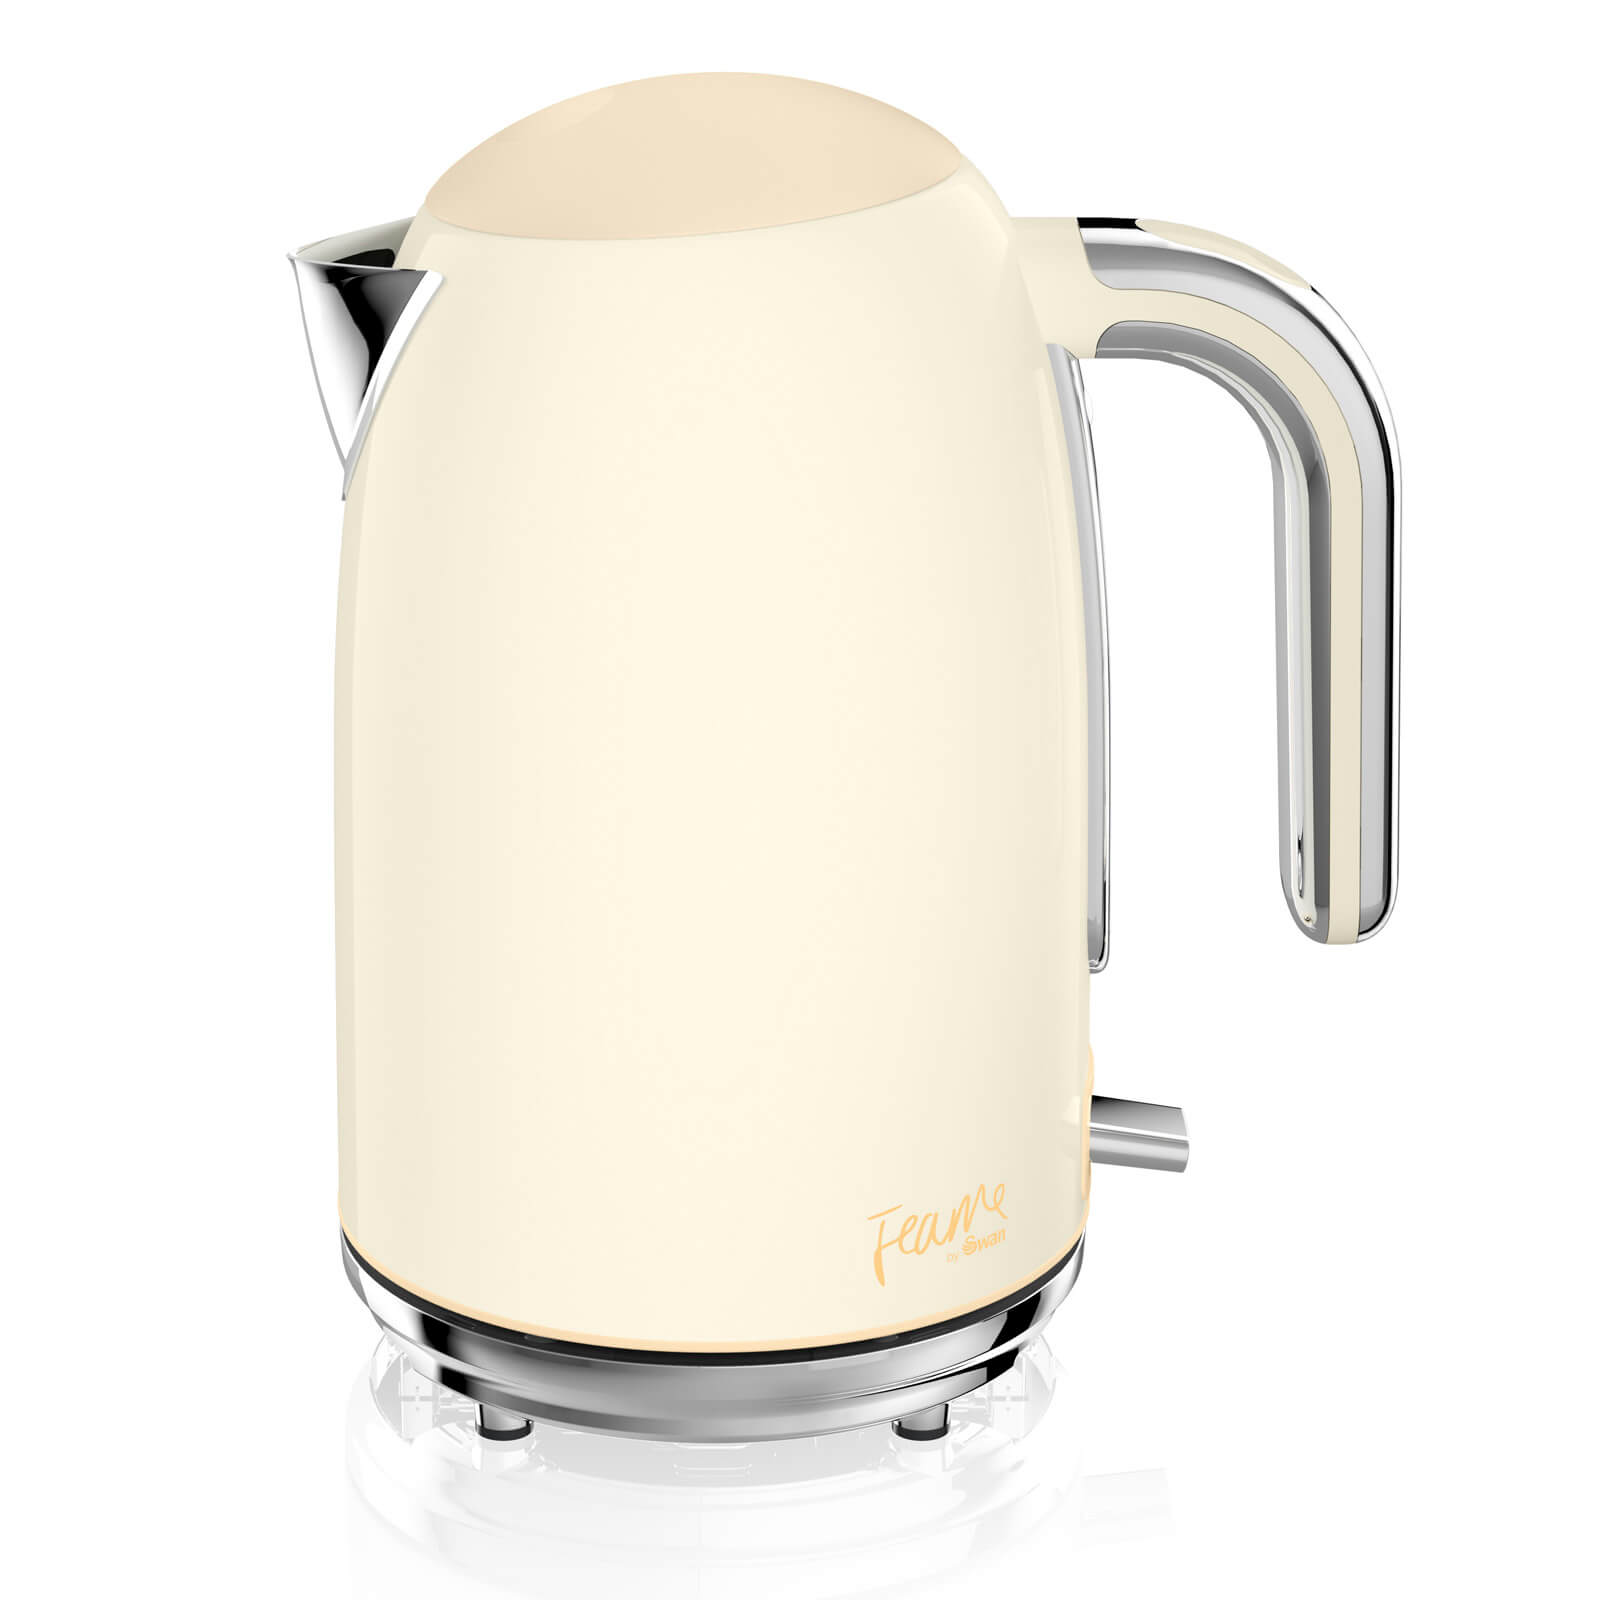 Fearne Cotton Quiet 3kw Jug Kettle - Pale Honey